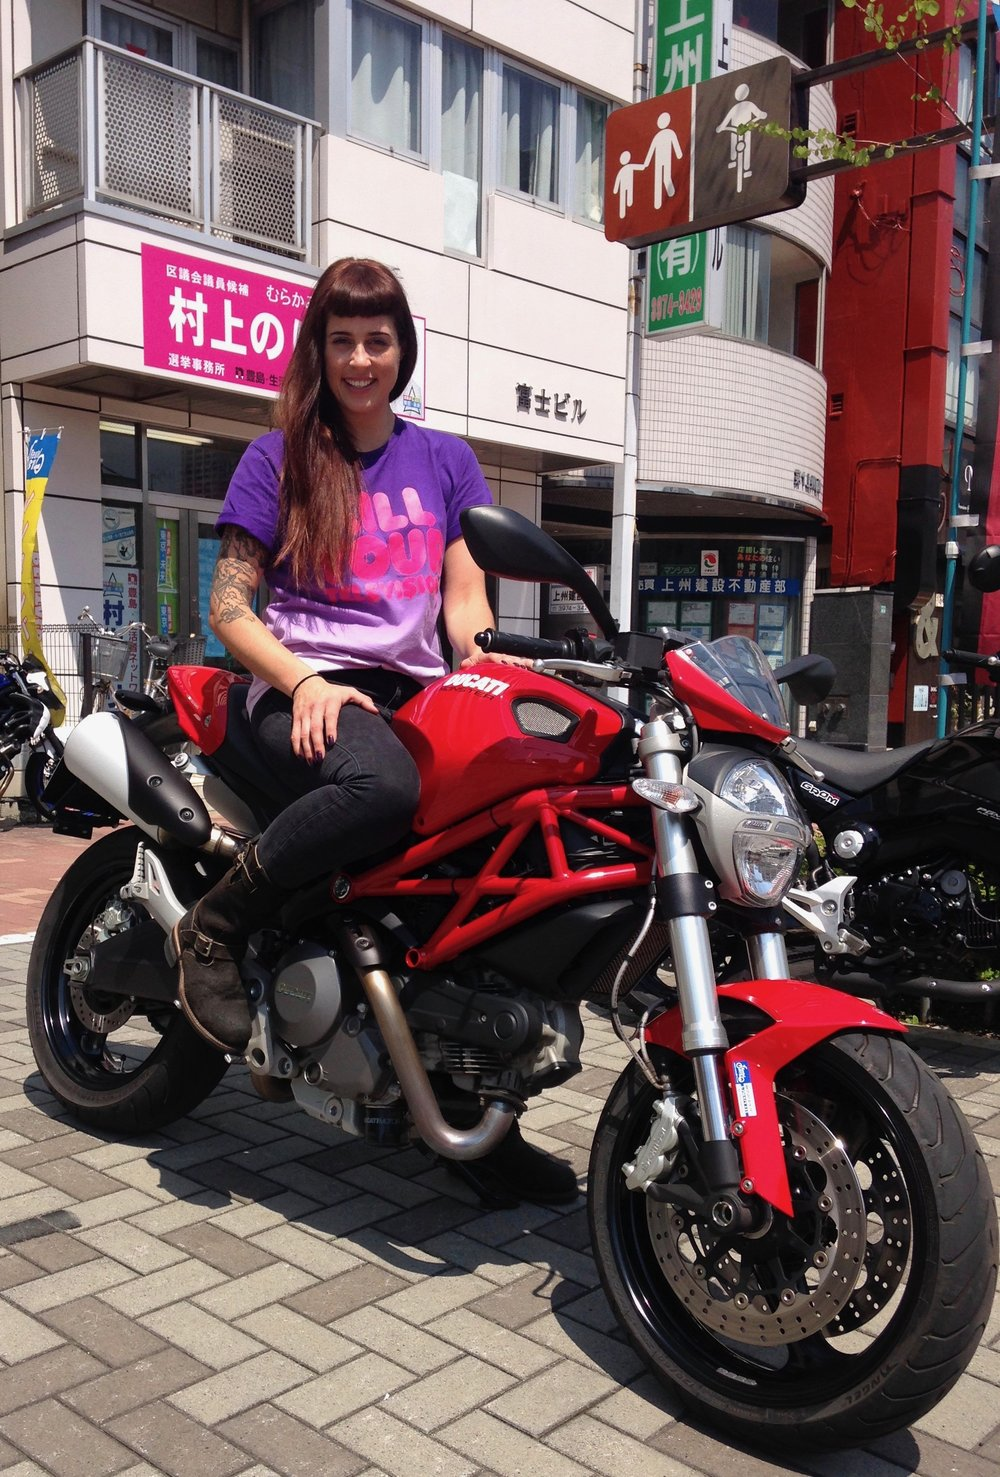 Japanese Roady #1 w/ the Ducati Monster 800. Tokyo - Mt Fuji - Shimoda/ Izu Penisular